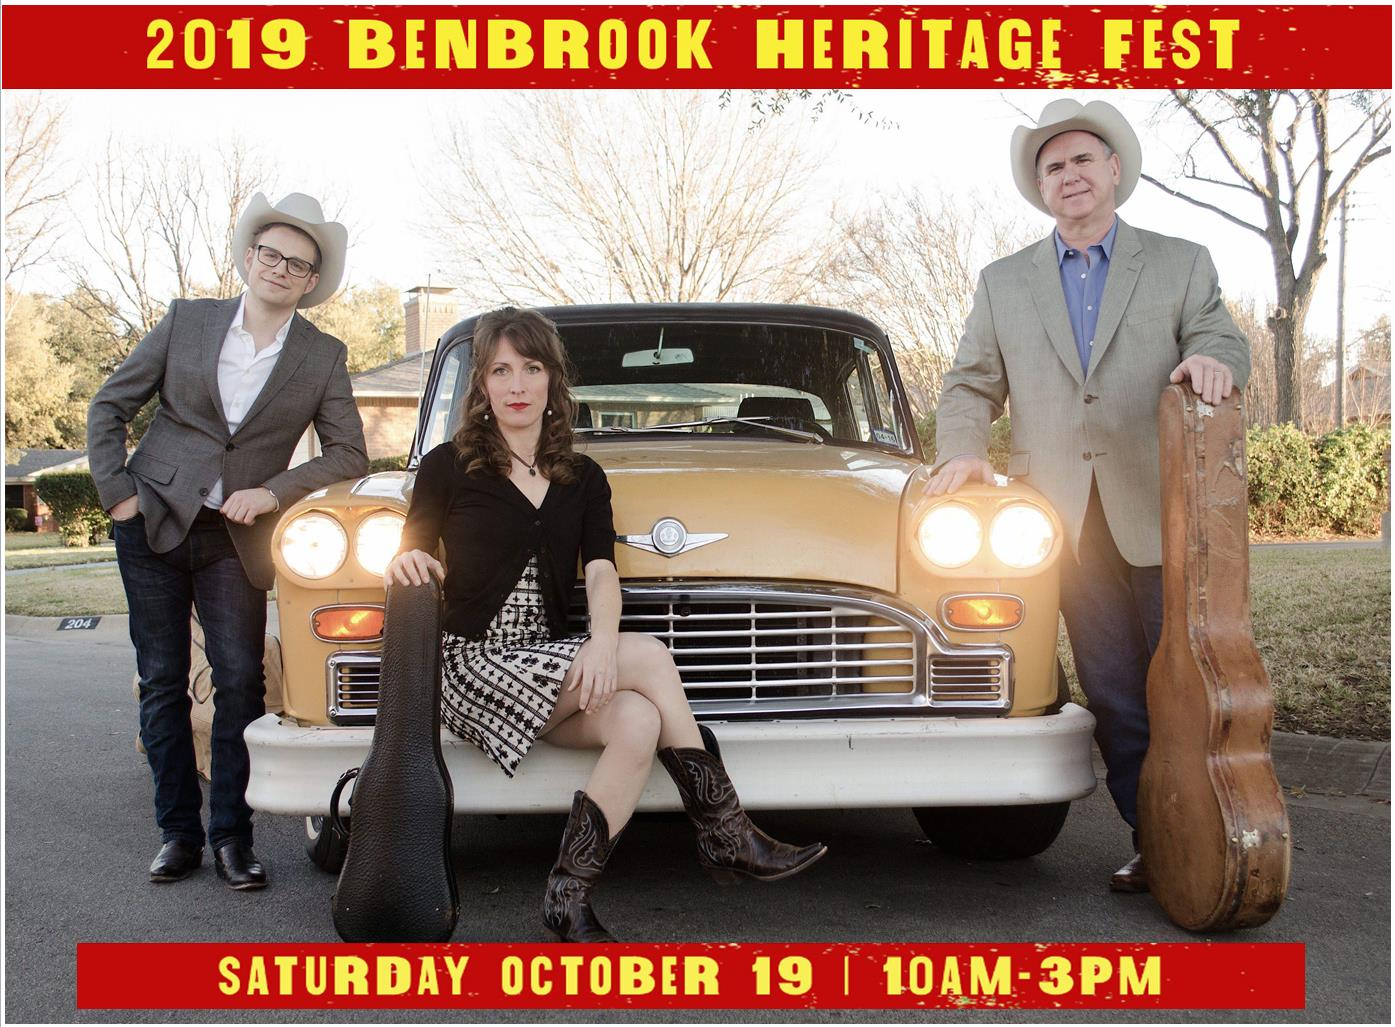 Heritage Fest 2019 News Flash Graphic